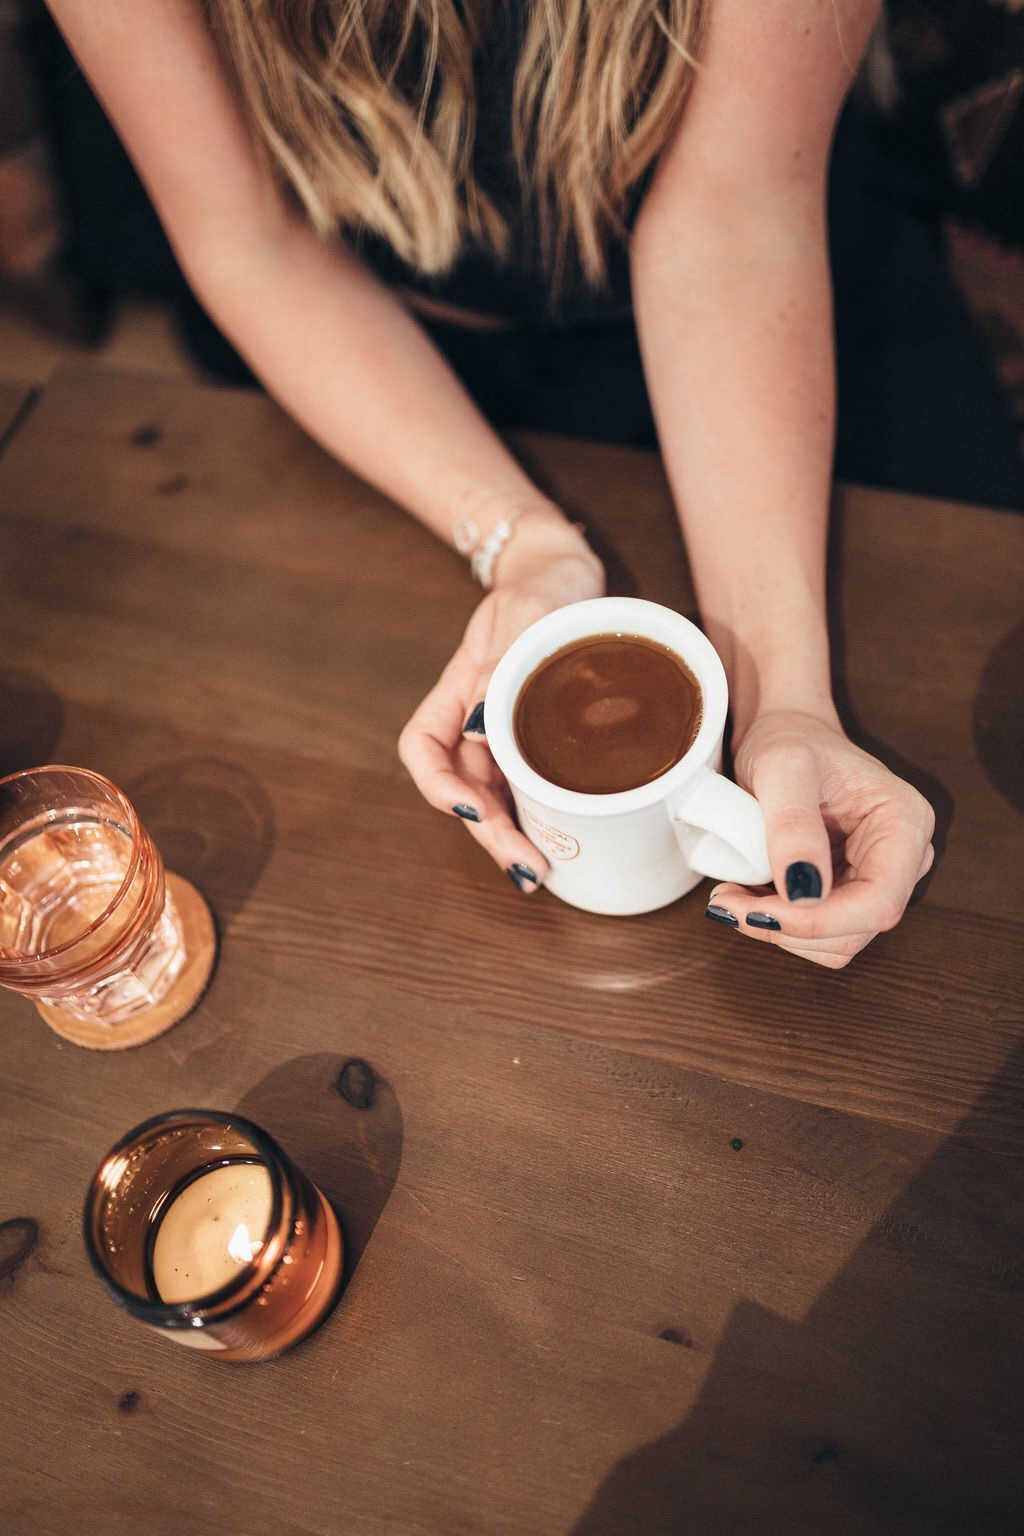 ditching starbucks habit | WHY I'M DITCHING MY STARBUCKS ADDICTION AND HOW YOU CAN TOO by popular San Francisco life and style blog, Just Add Glam: image of a woman sitting at a table and holding a coffee cup.